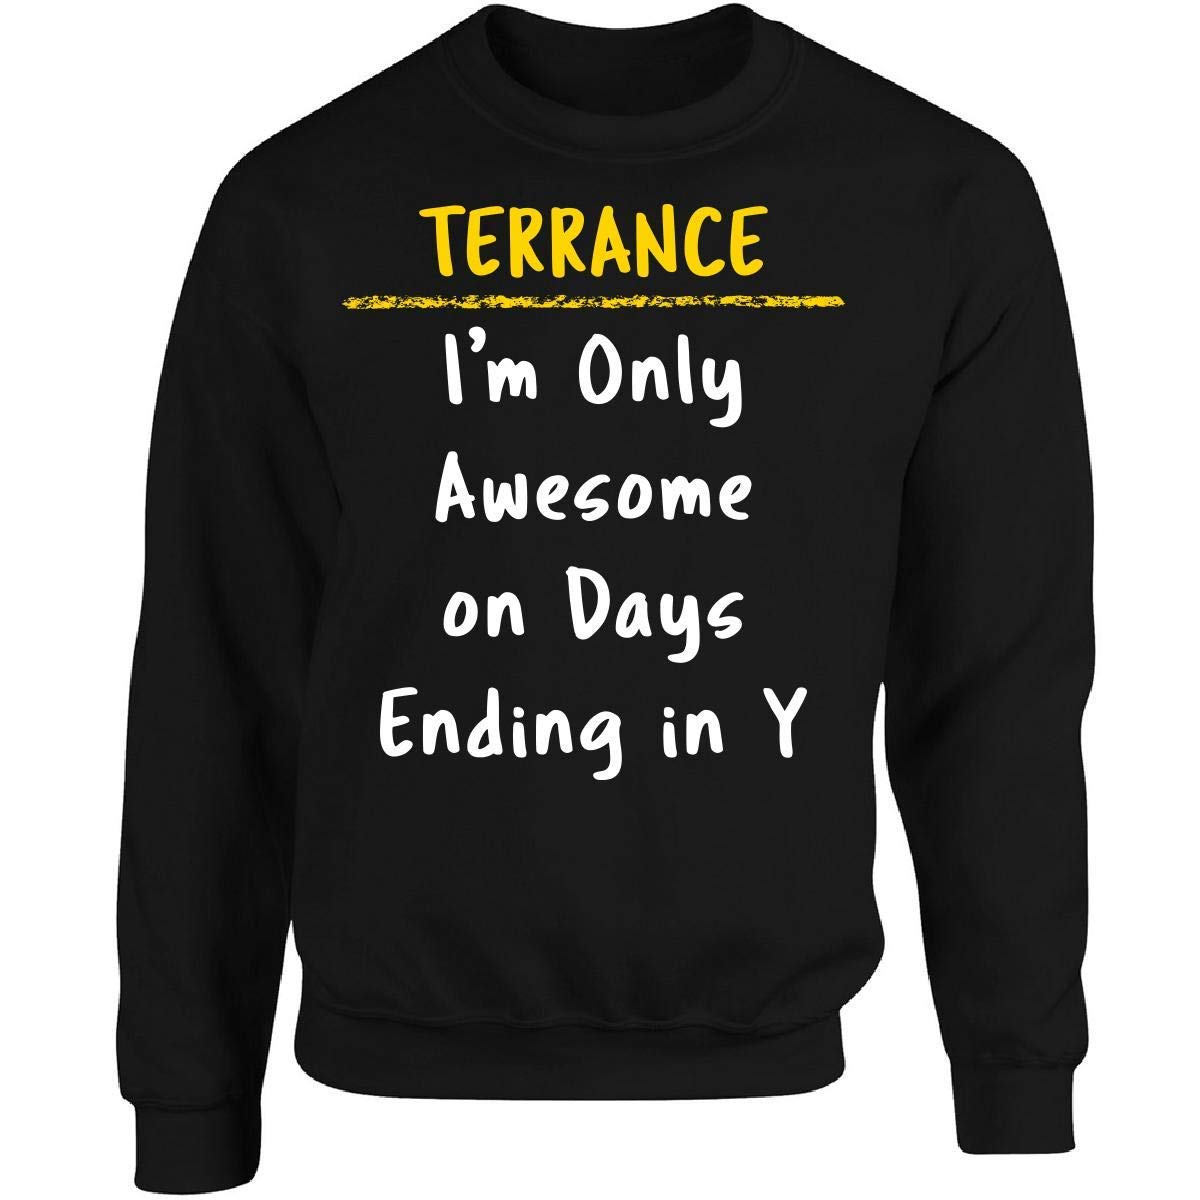 Sierra Goods Terrance Awesome Sarcastic Funny Saying Name Office Gift - Adult Sweatshirt